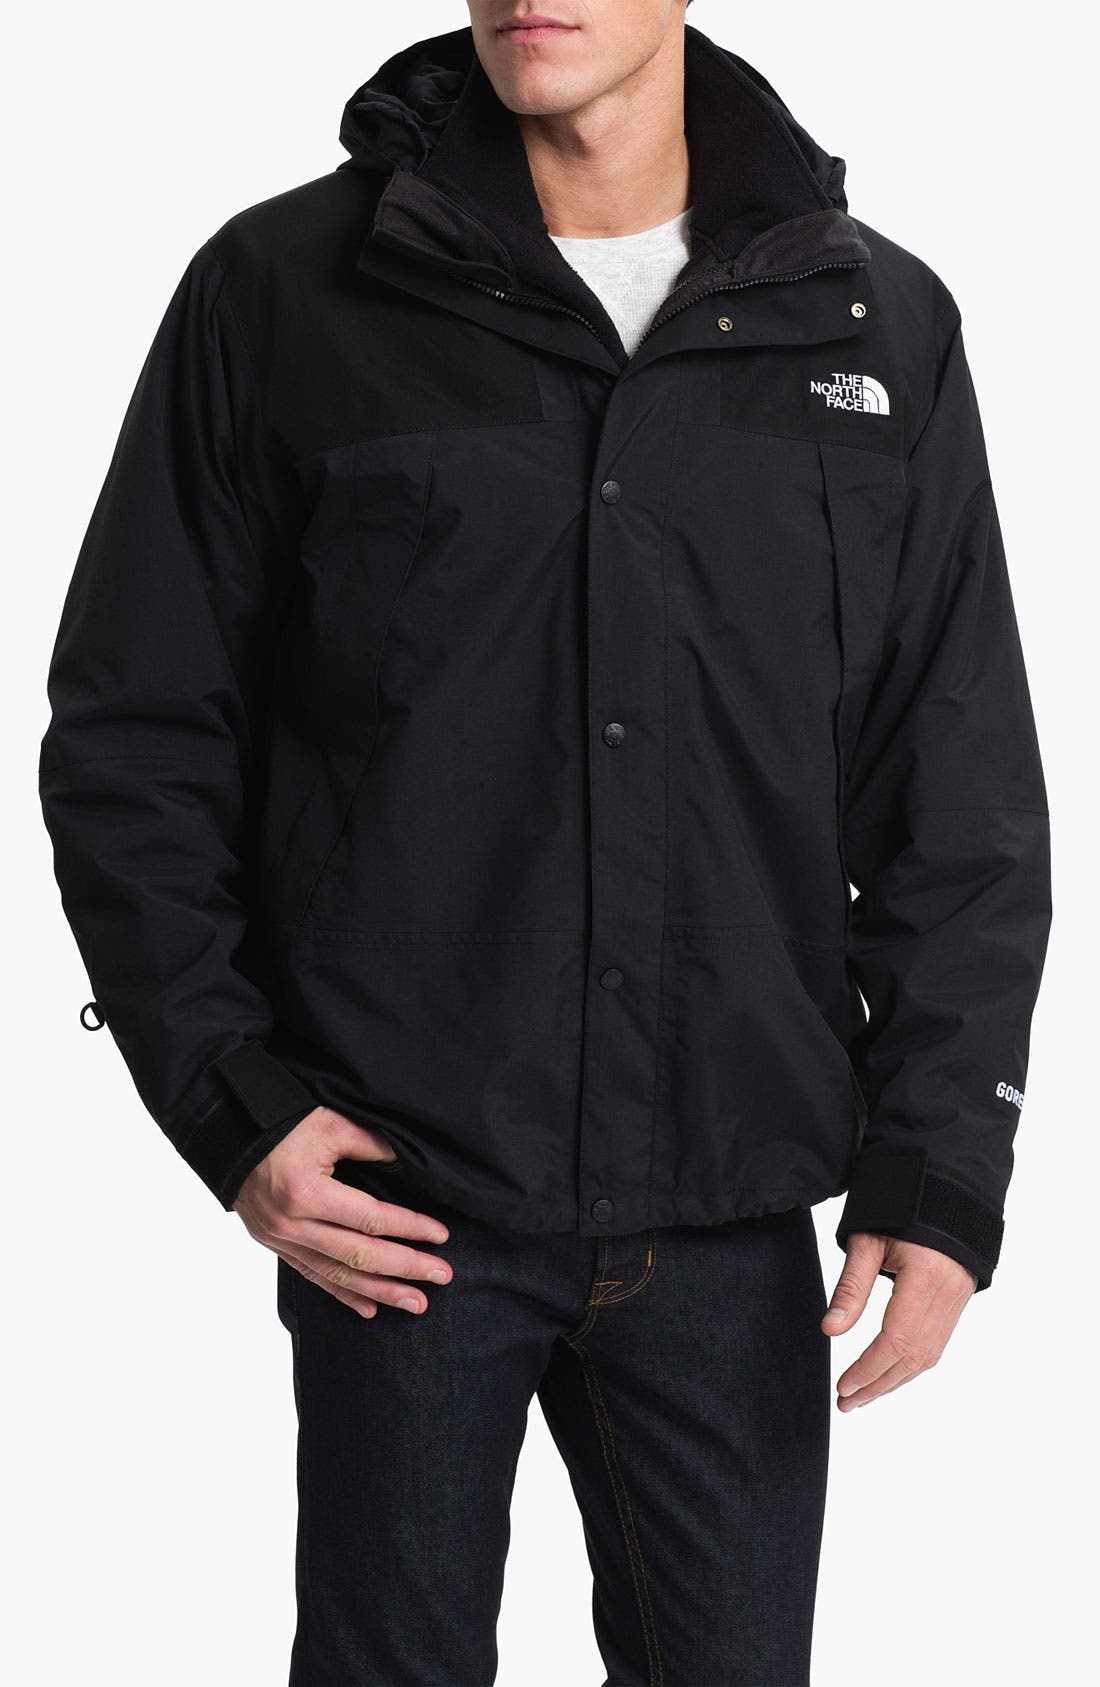 Alternate Image 1 Selected - The North Face 'Denali' TriClimate® 3-in-1 Jacket